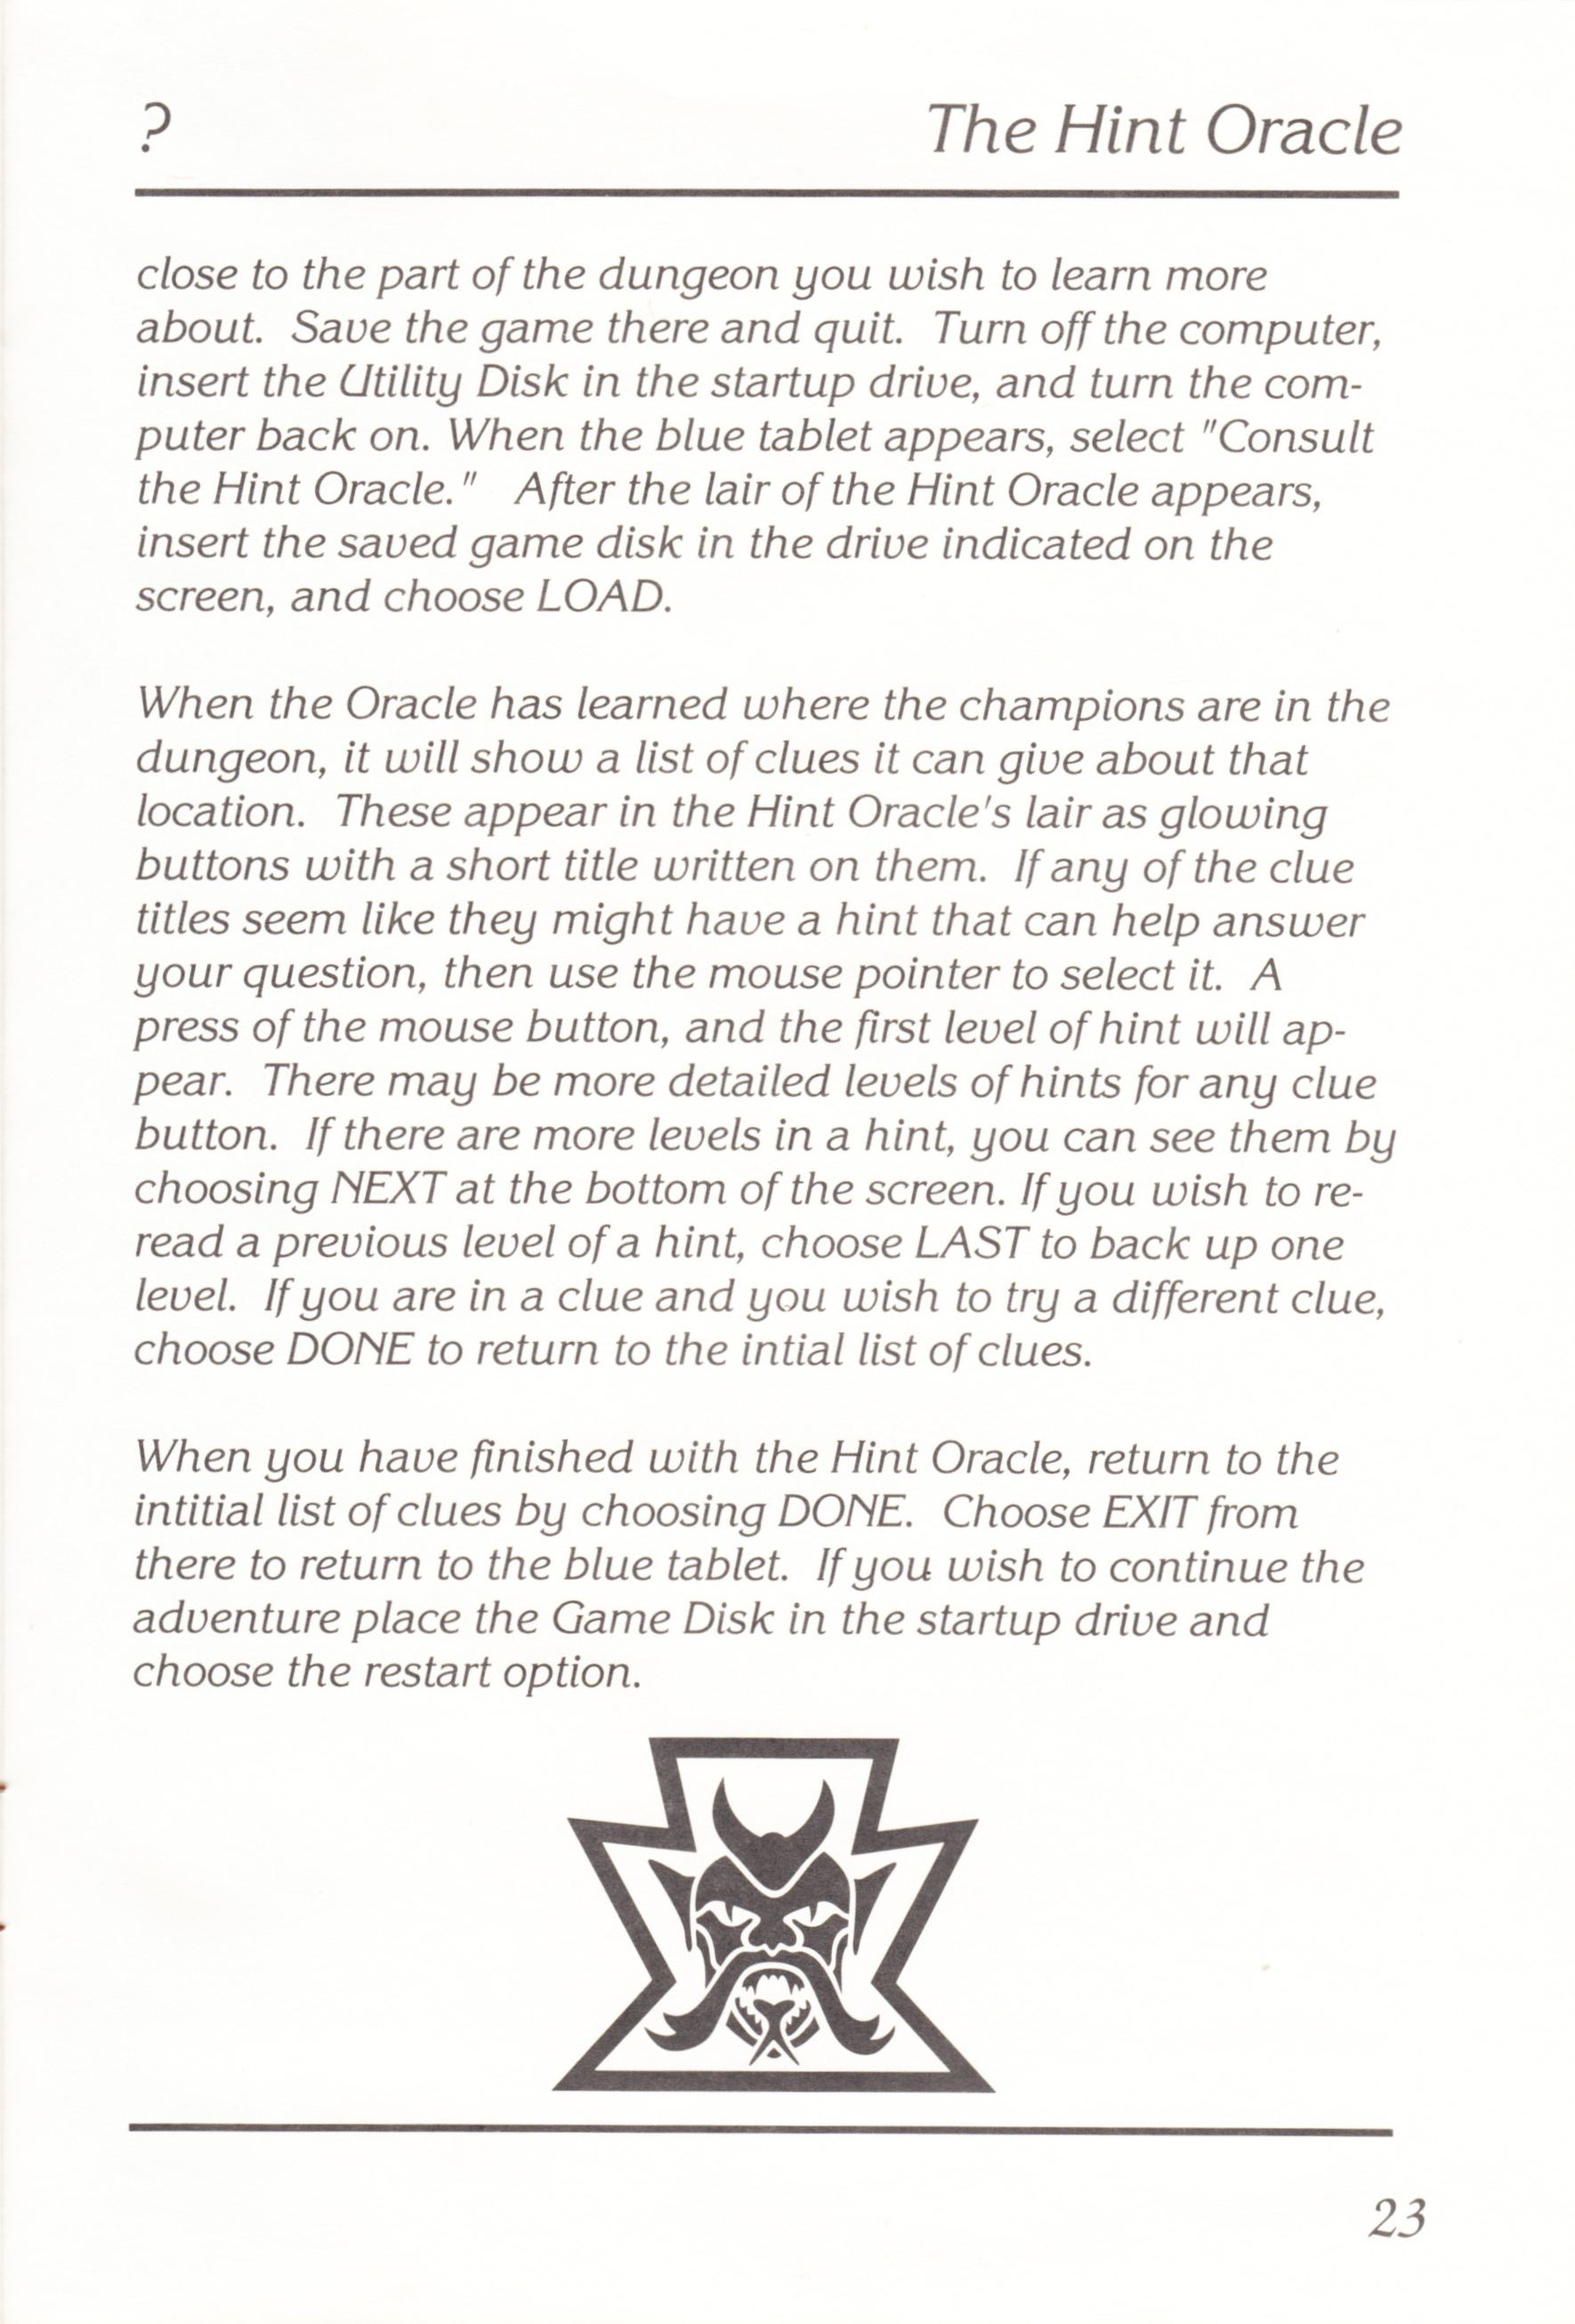 Game - Chaos Strikes Back - UK - Atari ST - Manual - Page 025 - Scan